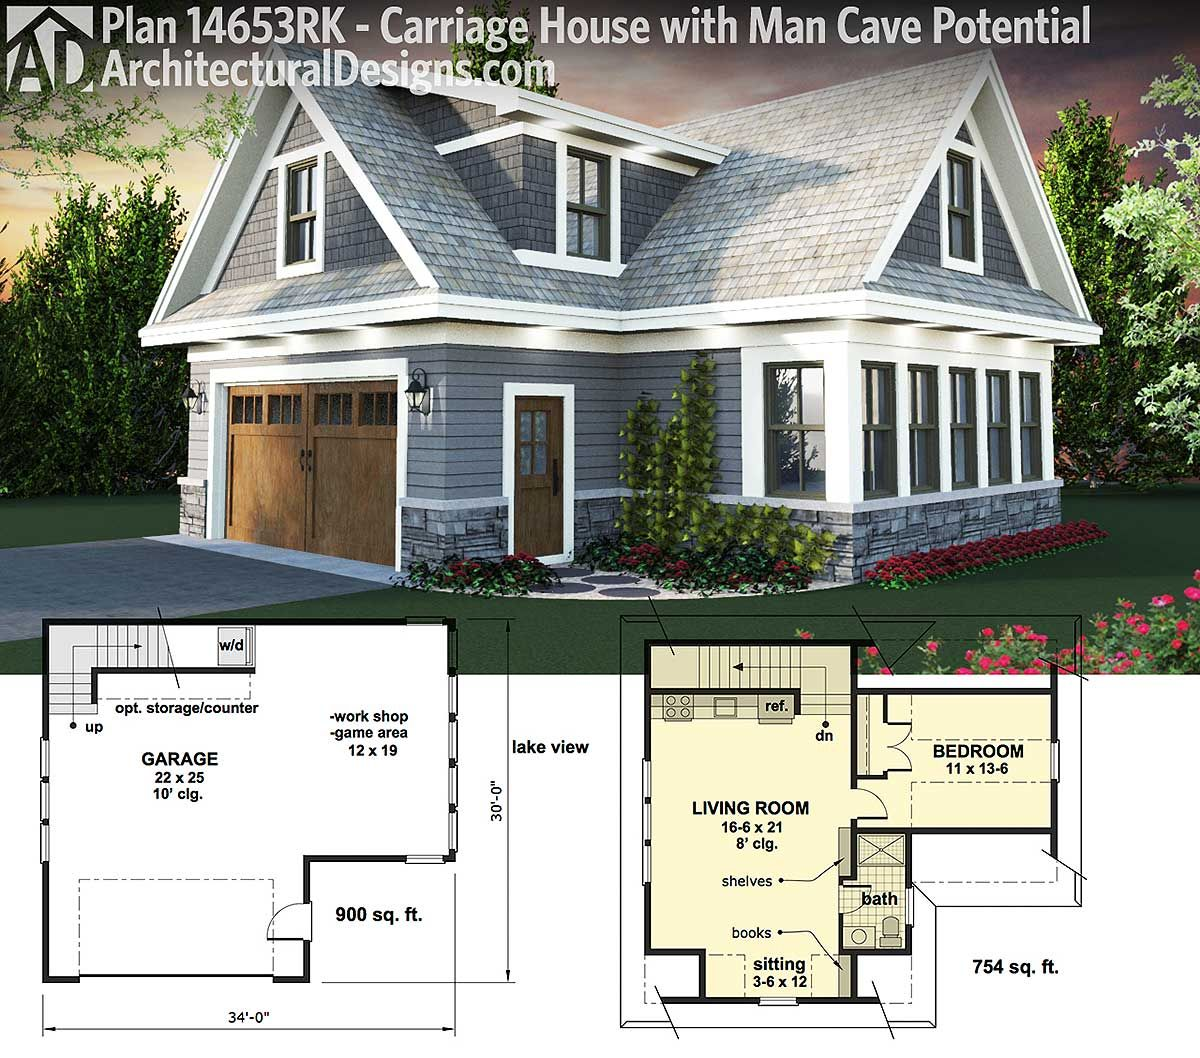 Plan 14653rk carriage house plan with man cave potential for Cost to build your own garage